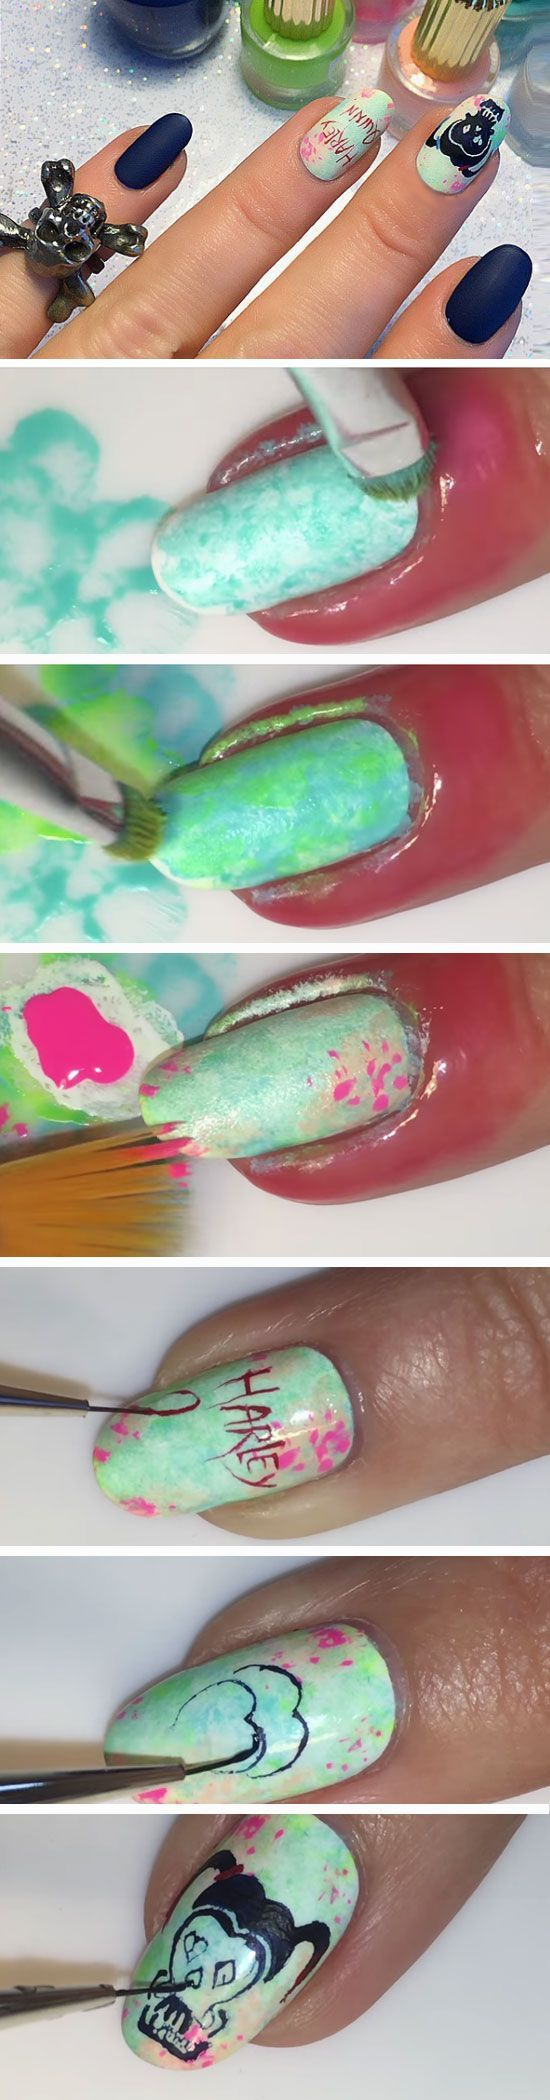 Harley Quinn Squad 23 Easy Nail Art Ideas For S That Are Totally